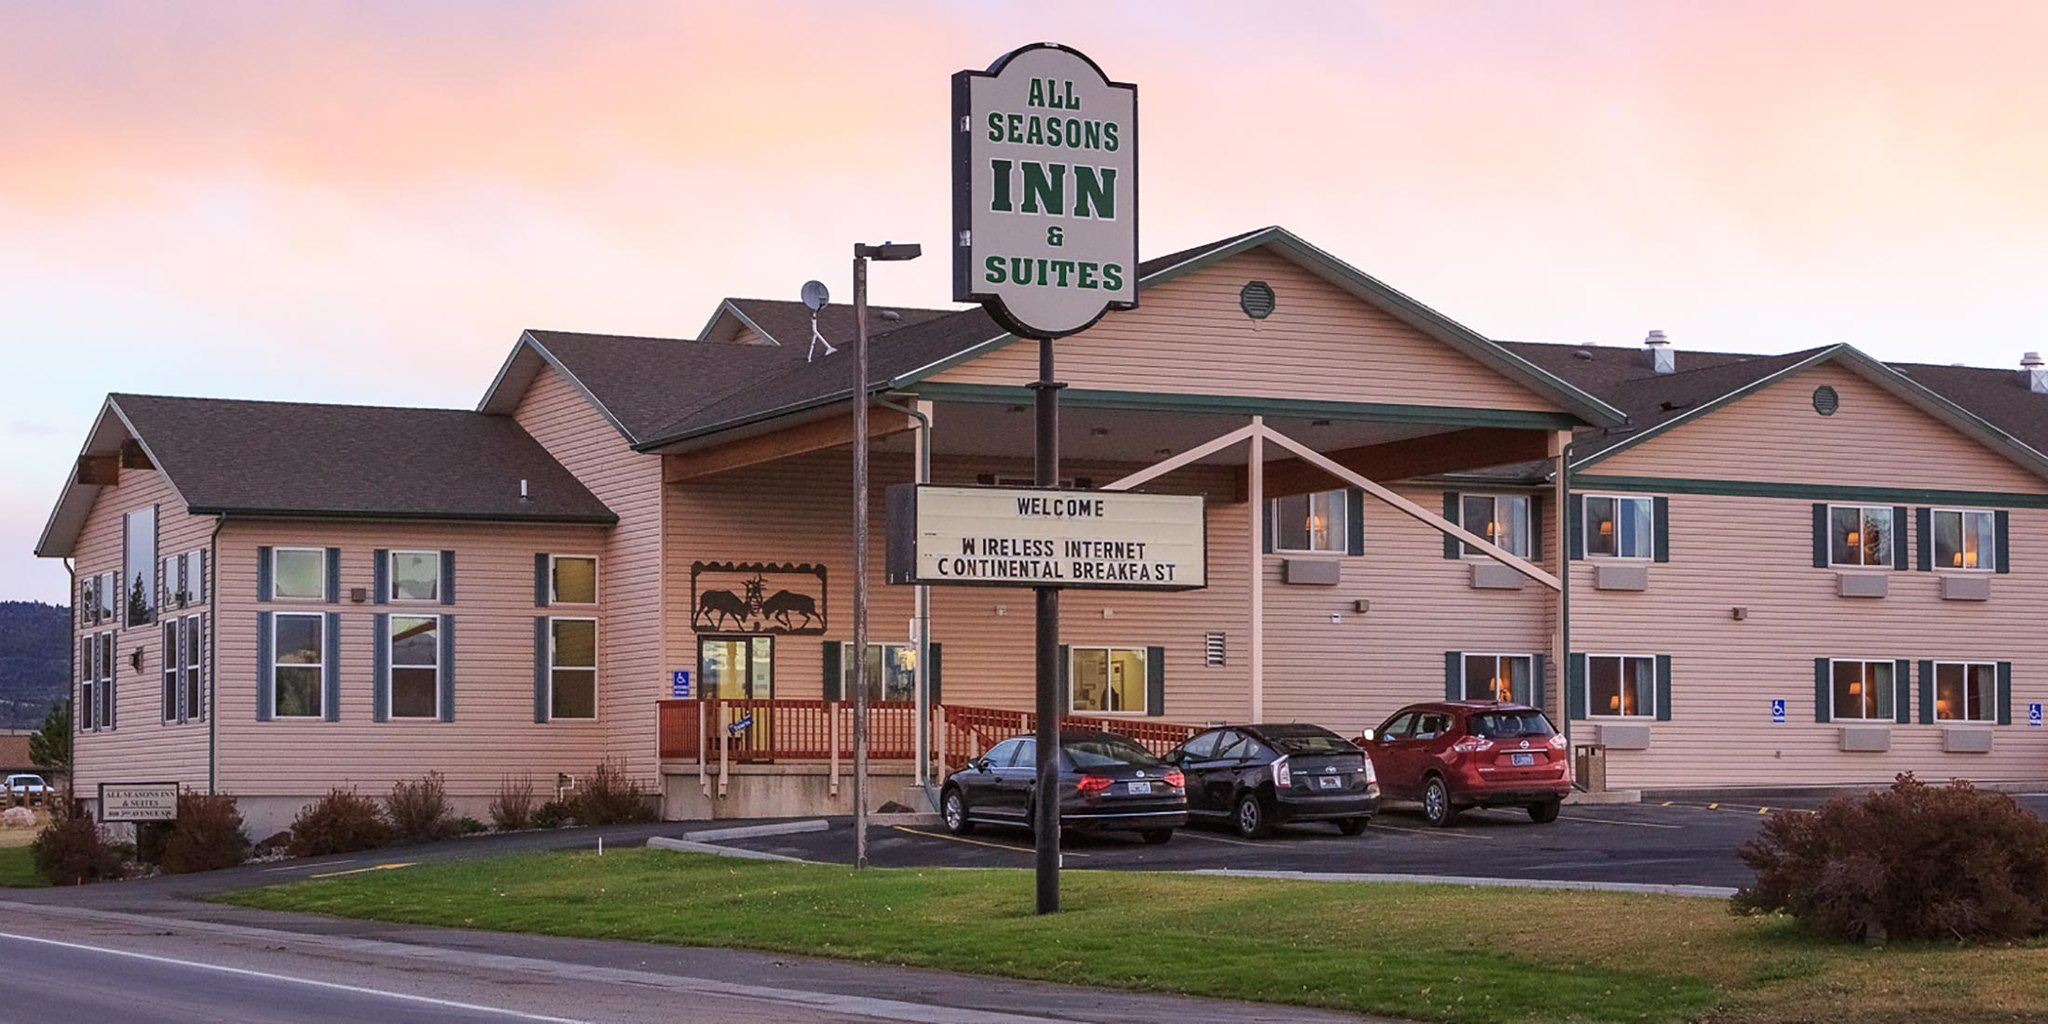 A welcoming hotel with a hot tub located in White Sulphur Springs, Montana - Meagher County